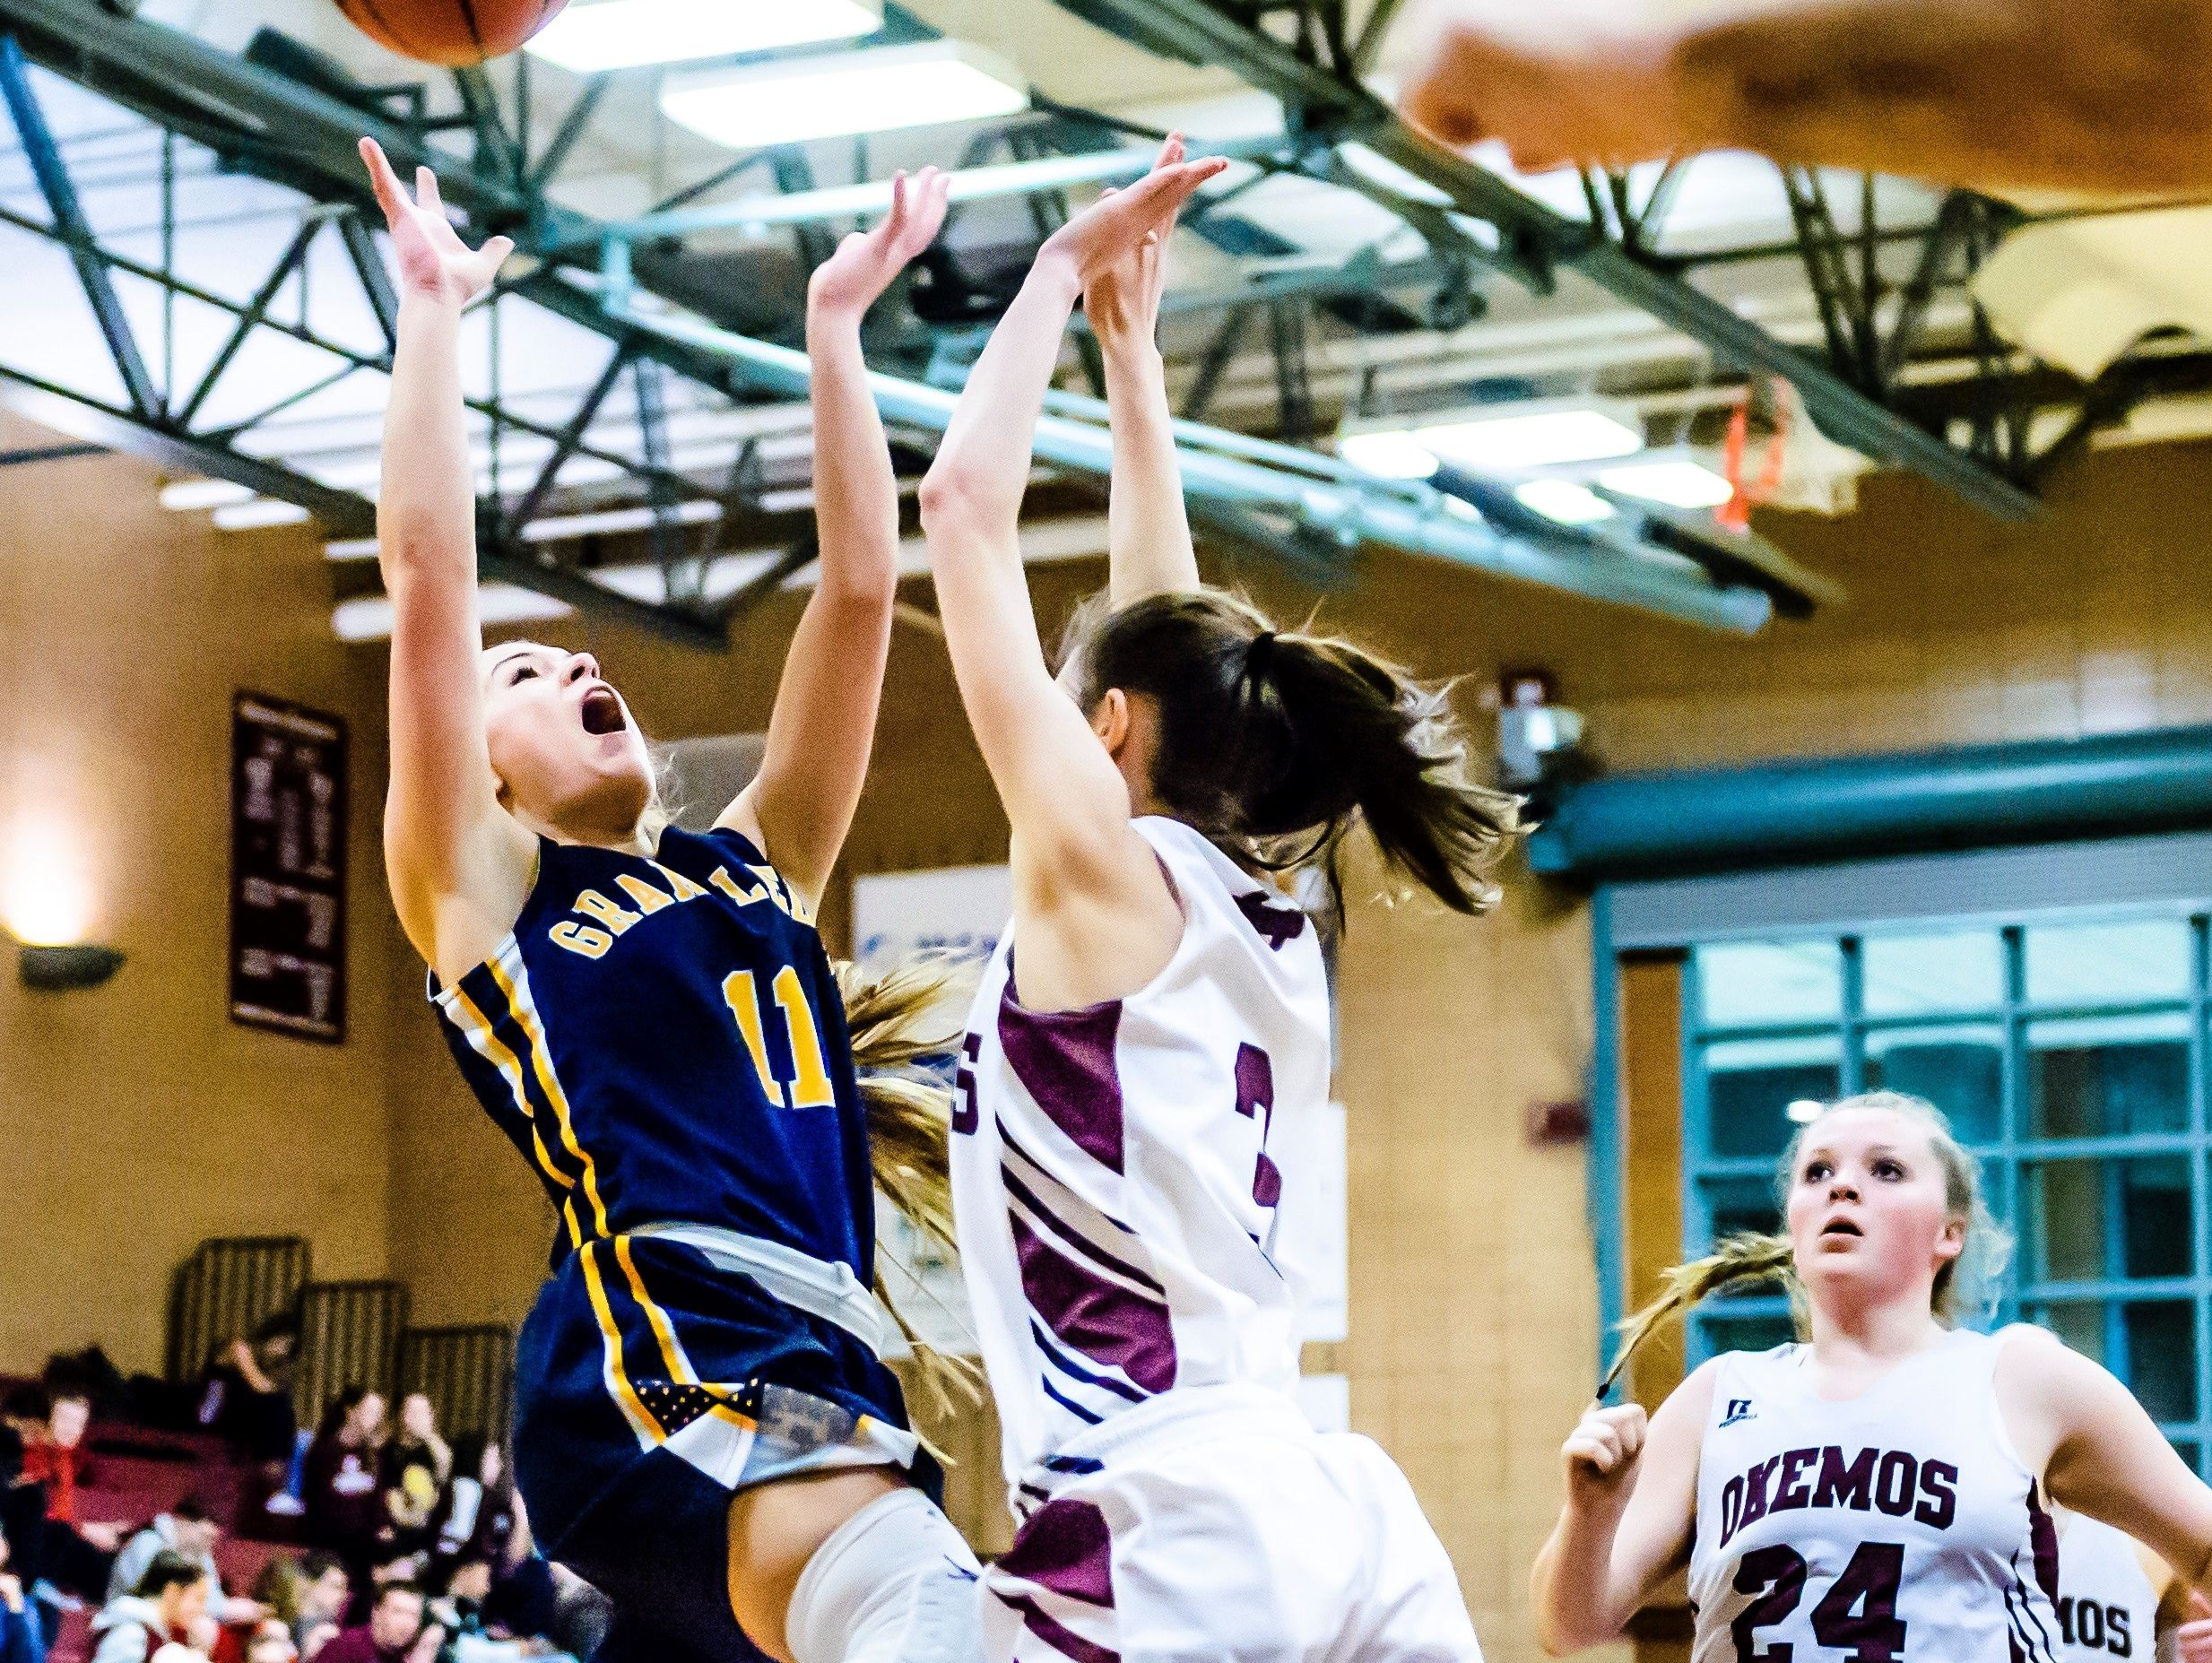 Brooke Rambo, left, of Grand Ledge puts up a shot over Skylar Westfall of Okemos during their game Friday February 3, 2017 in Okemos. Westfall was charged with a foul on the play.